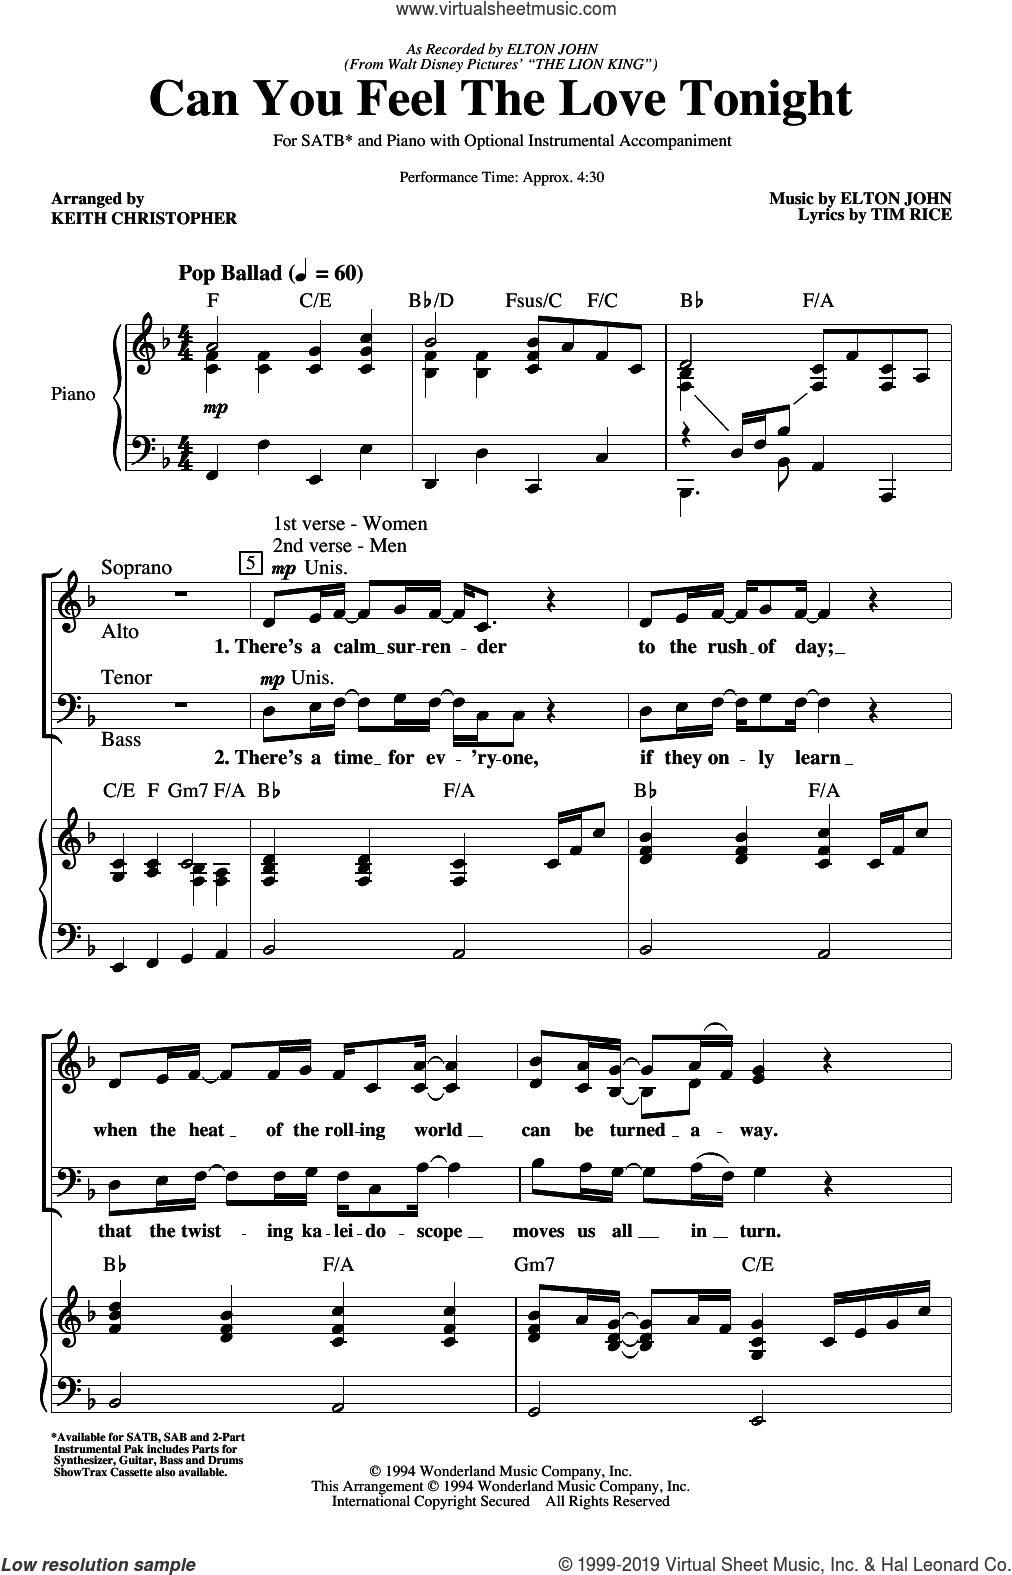 Can You Feel The Love Tonight (from The Lion King) (arr. Keith Christopher) sheet music for choir (2-Part) by Elton John, Keith Christopher and Tim Rice, intermediate duet